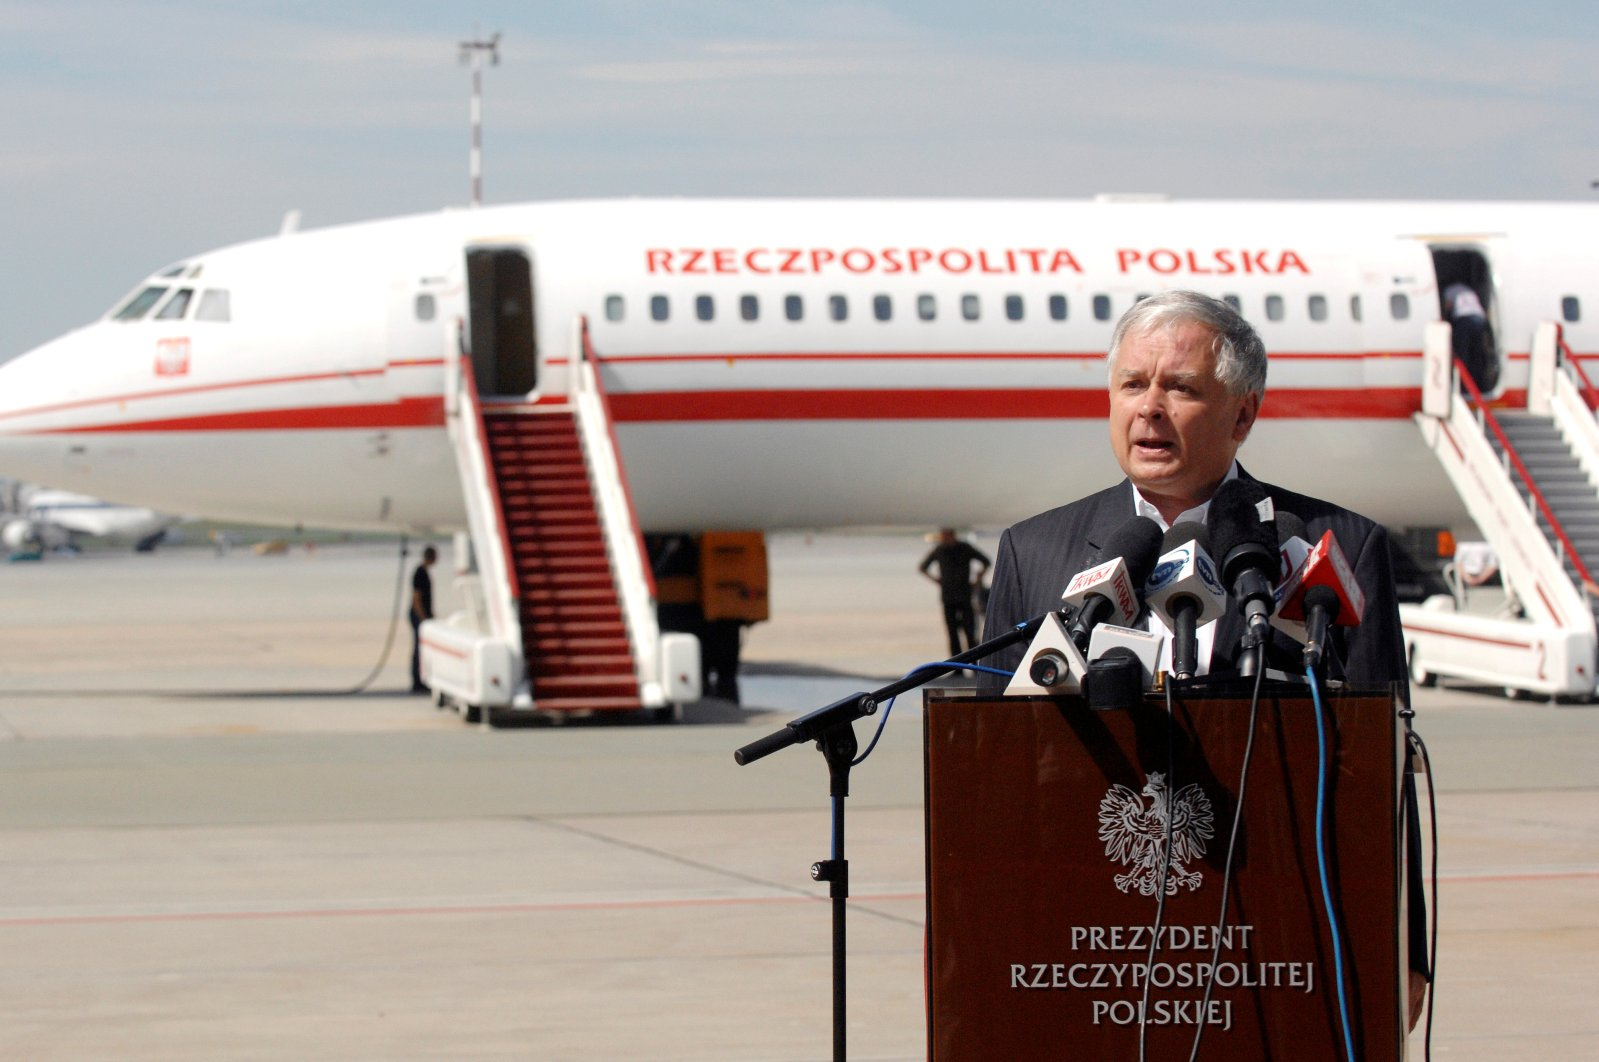 Polish President Lech Kaczynski speaks in front of the government Tupolev Tu-154 aircraft at Krakow airport, Poland, Aug. 8, 2008. (Reuters Photo)